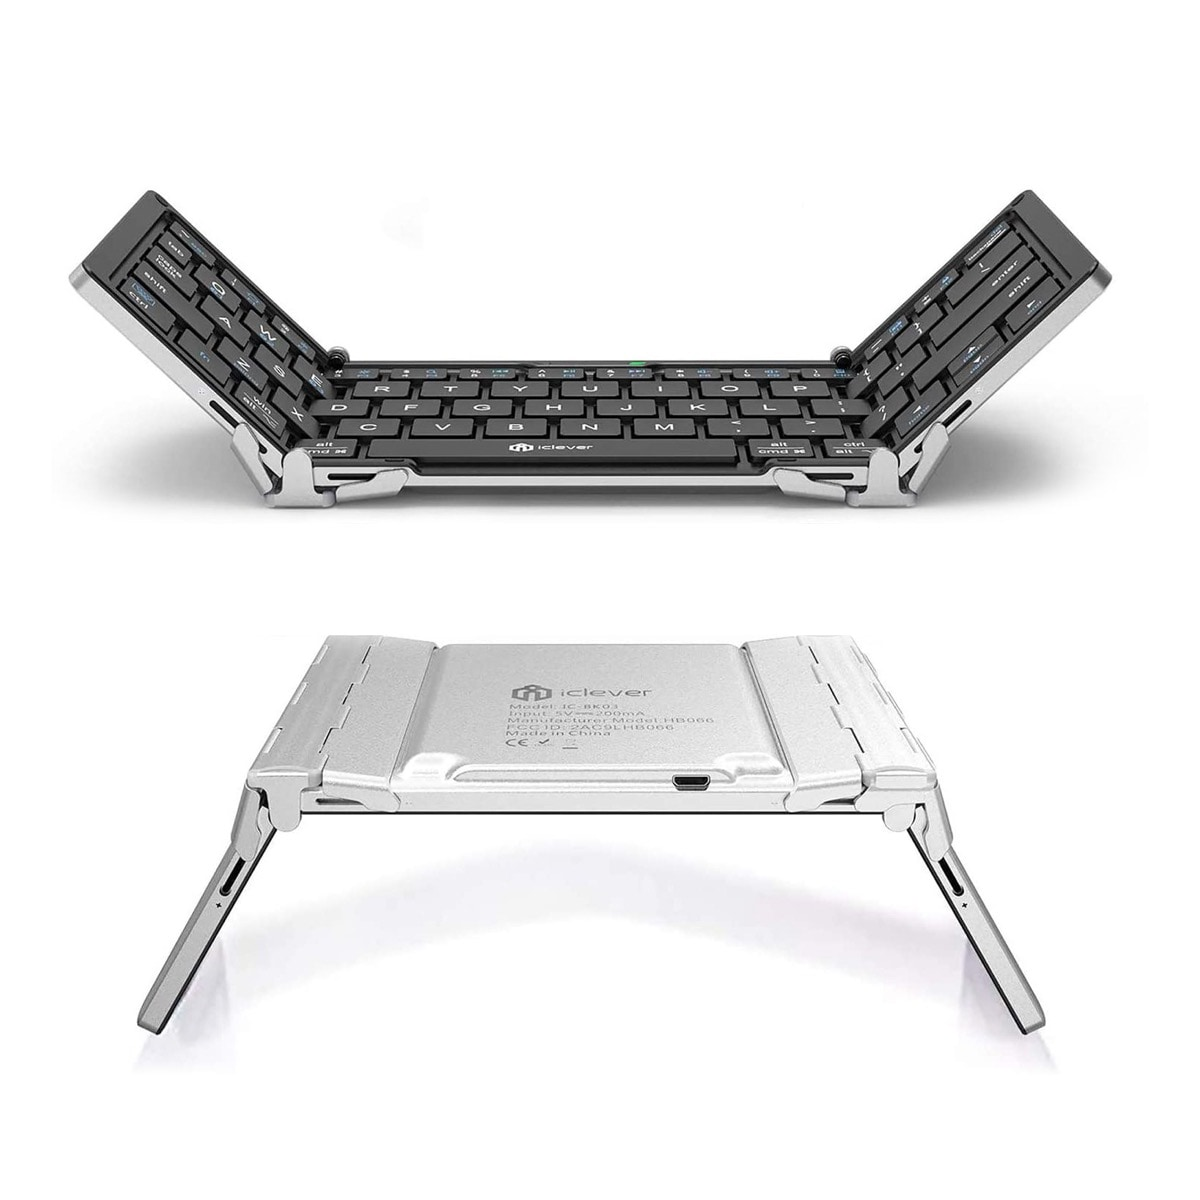 Durable aluminum Amazon Fire compatible keyboard iClever